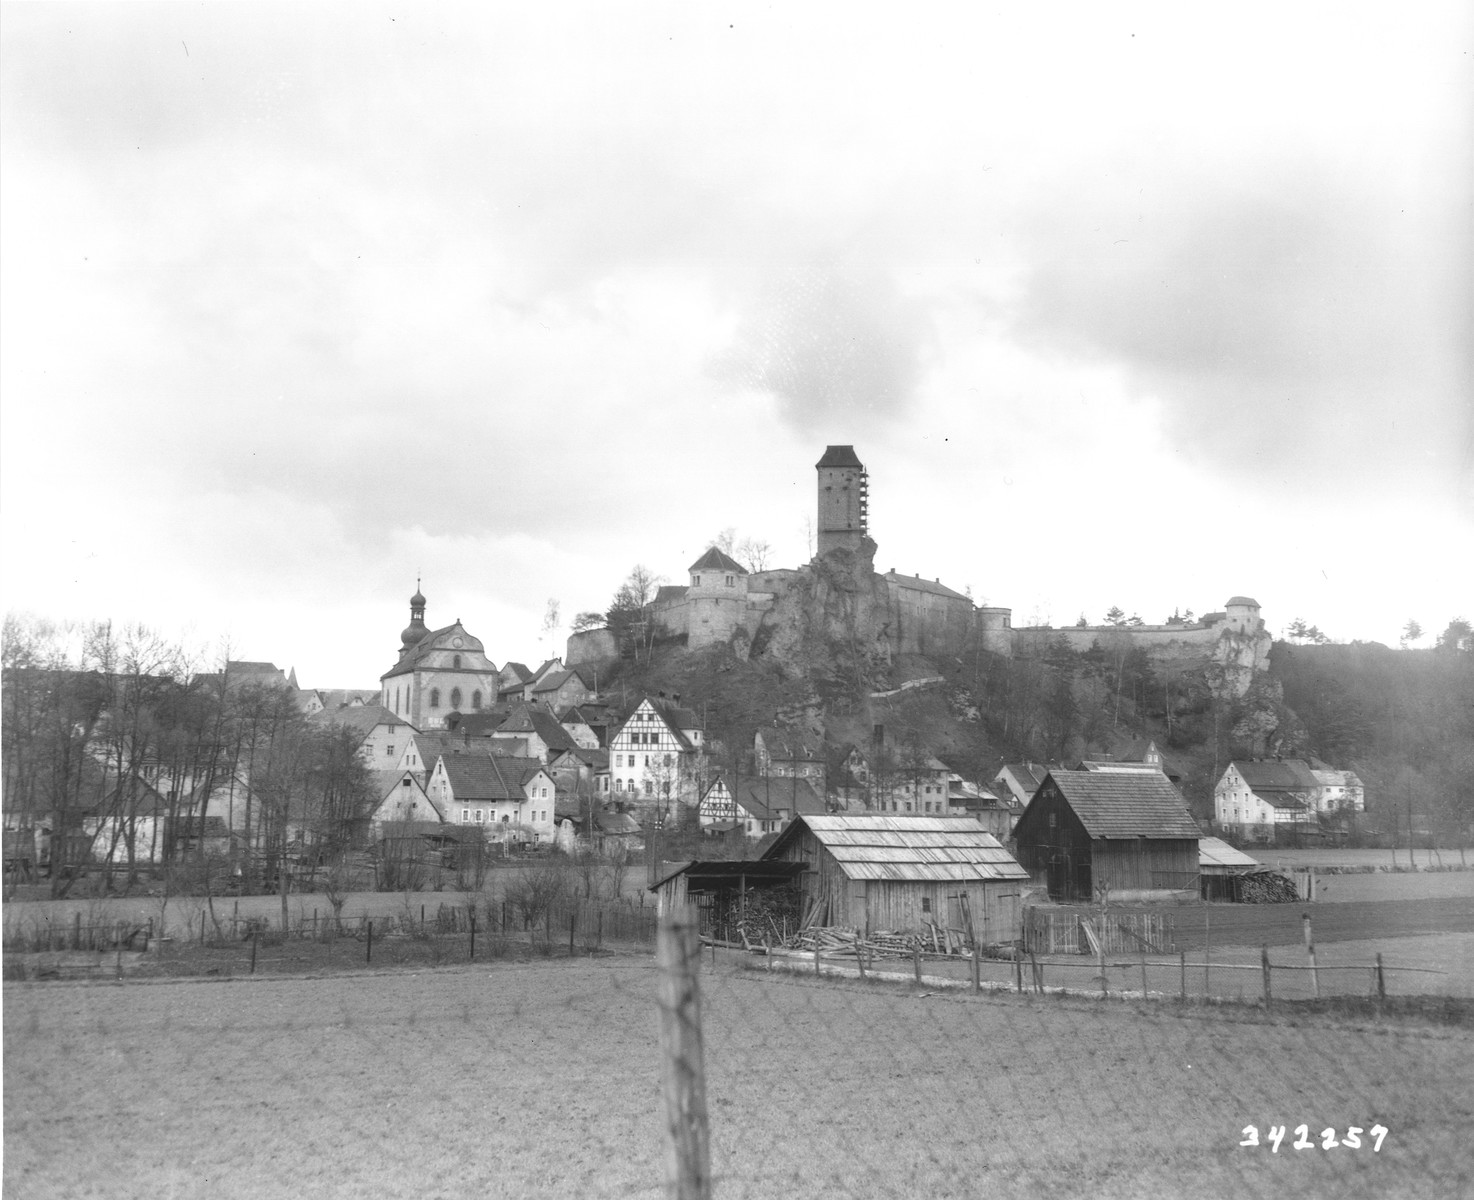 View of Veldenstein castle owned by Herman Goering, where American military personnel uncovered looted property.